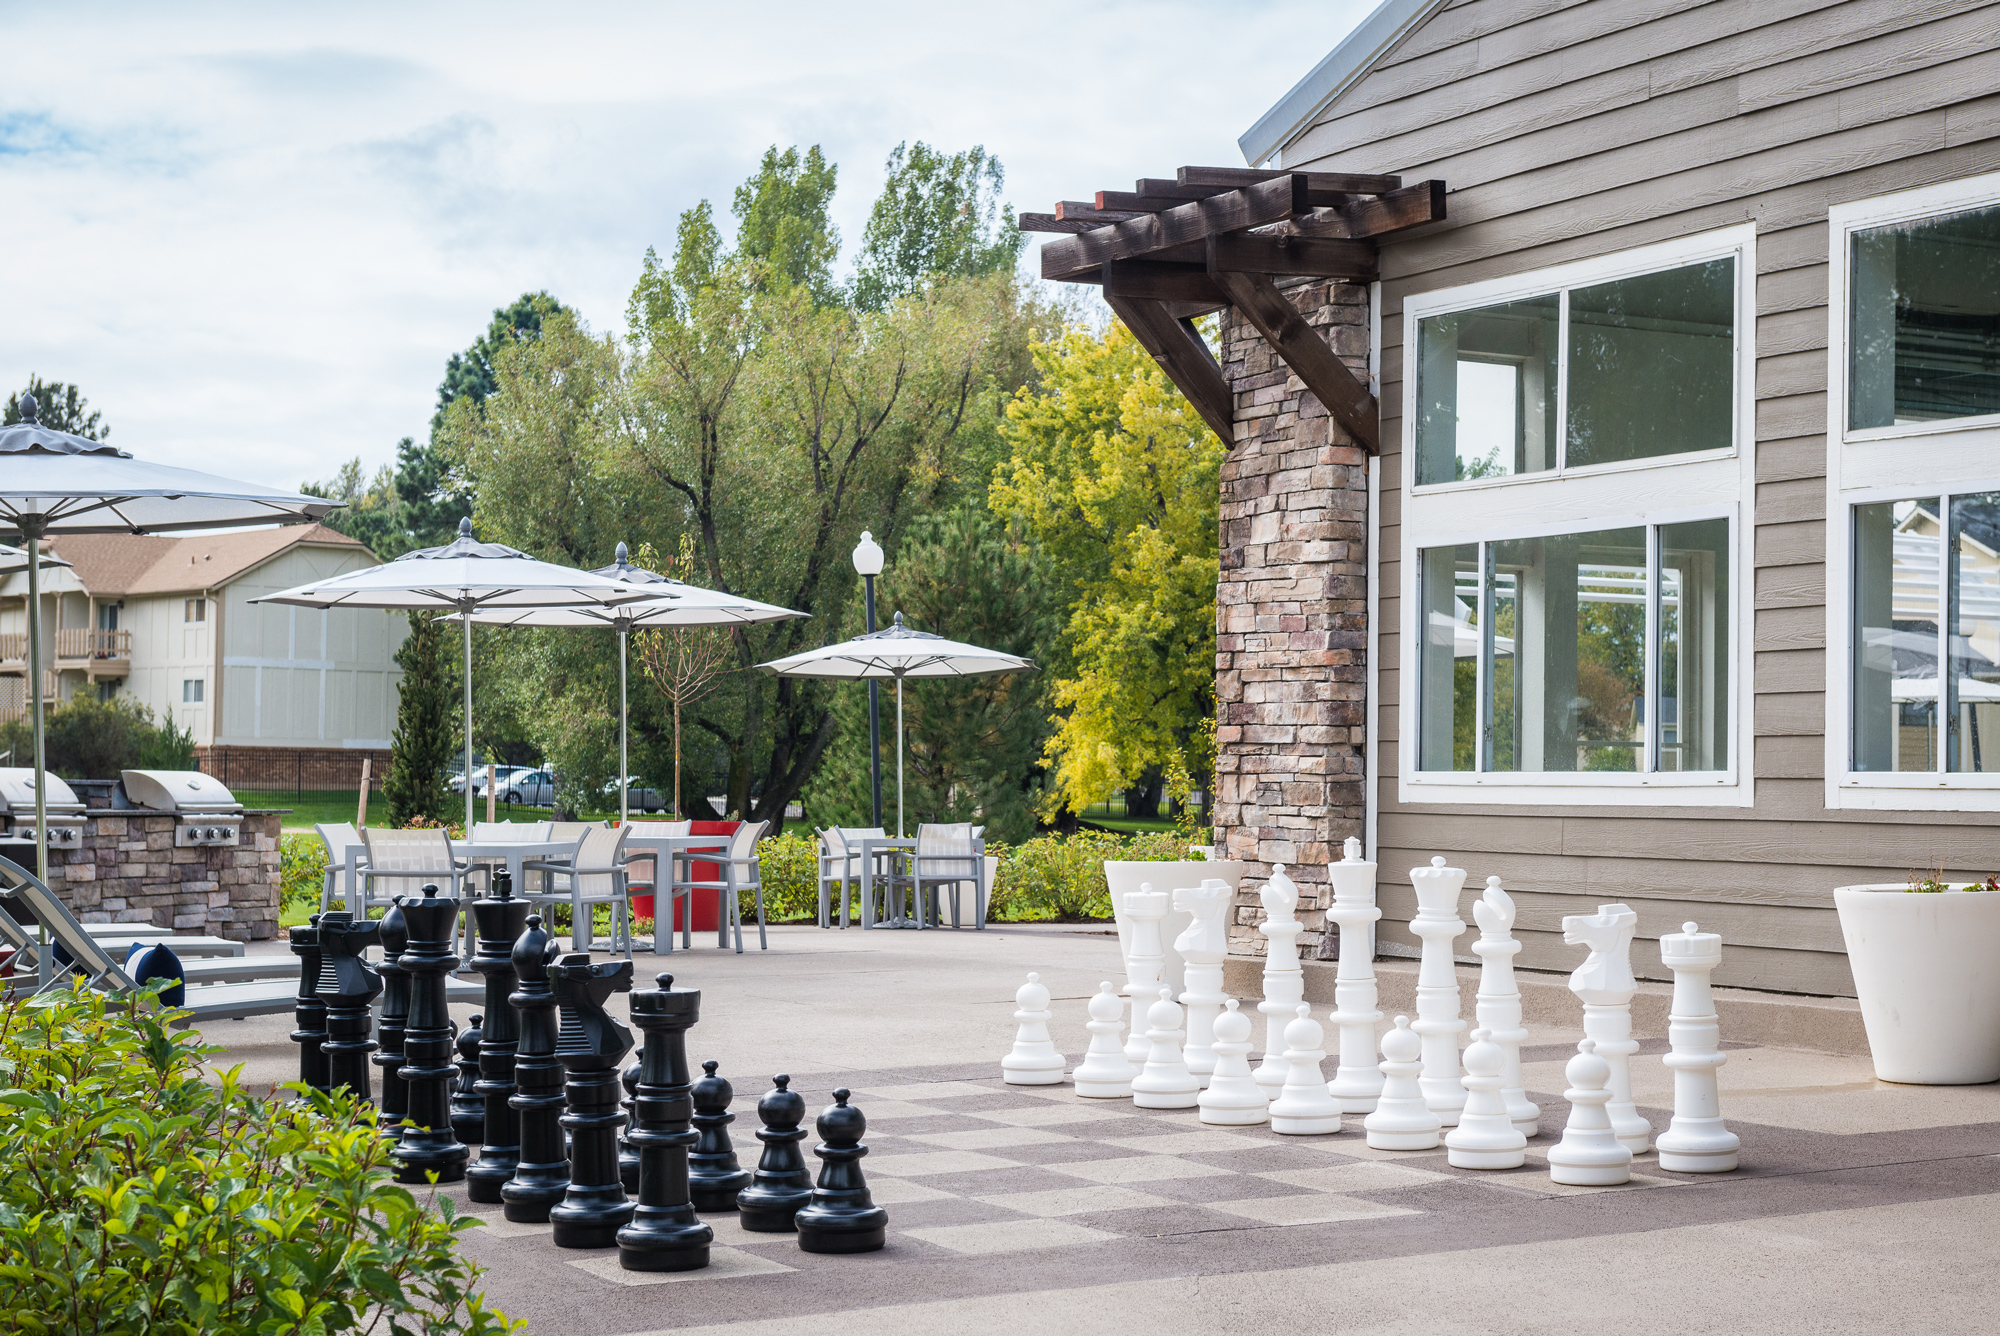 Village gardens fort collins see pics avail - Village garden apartments fort collins ...